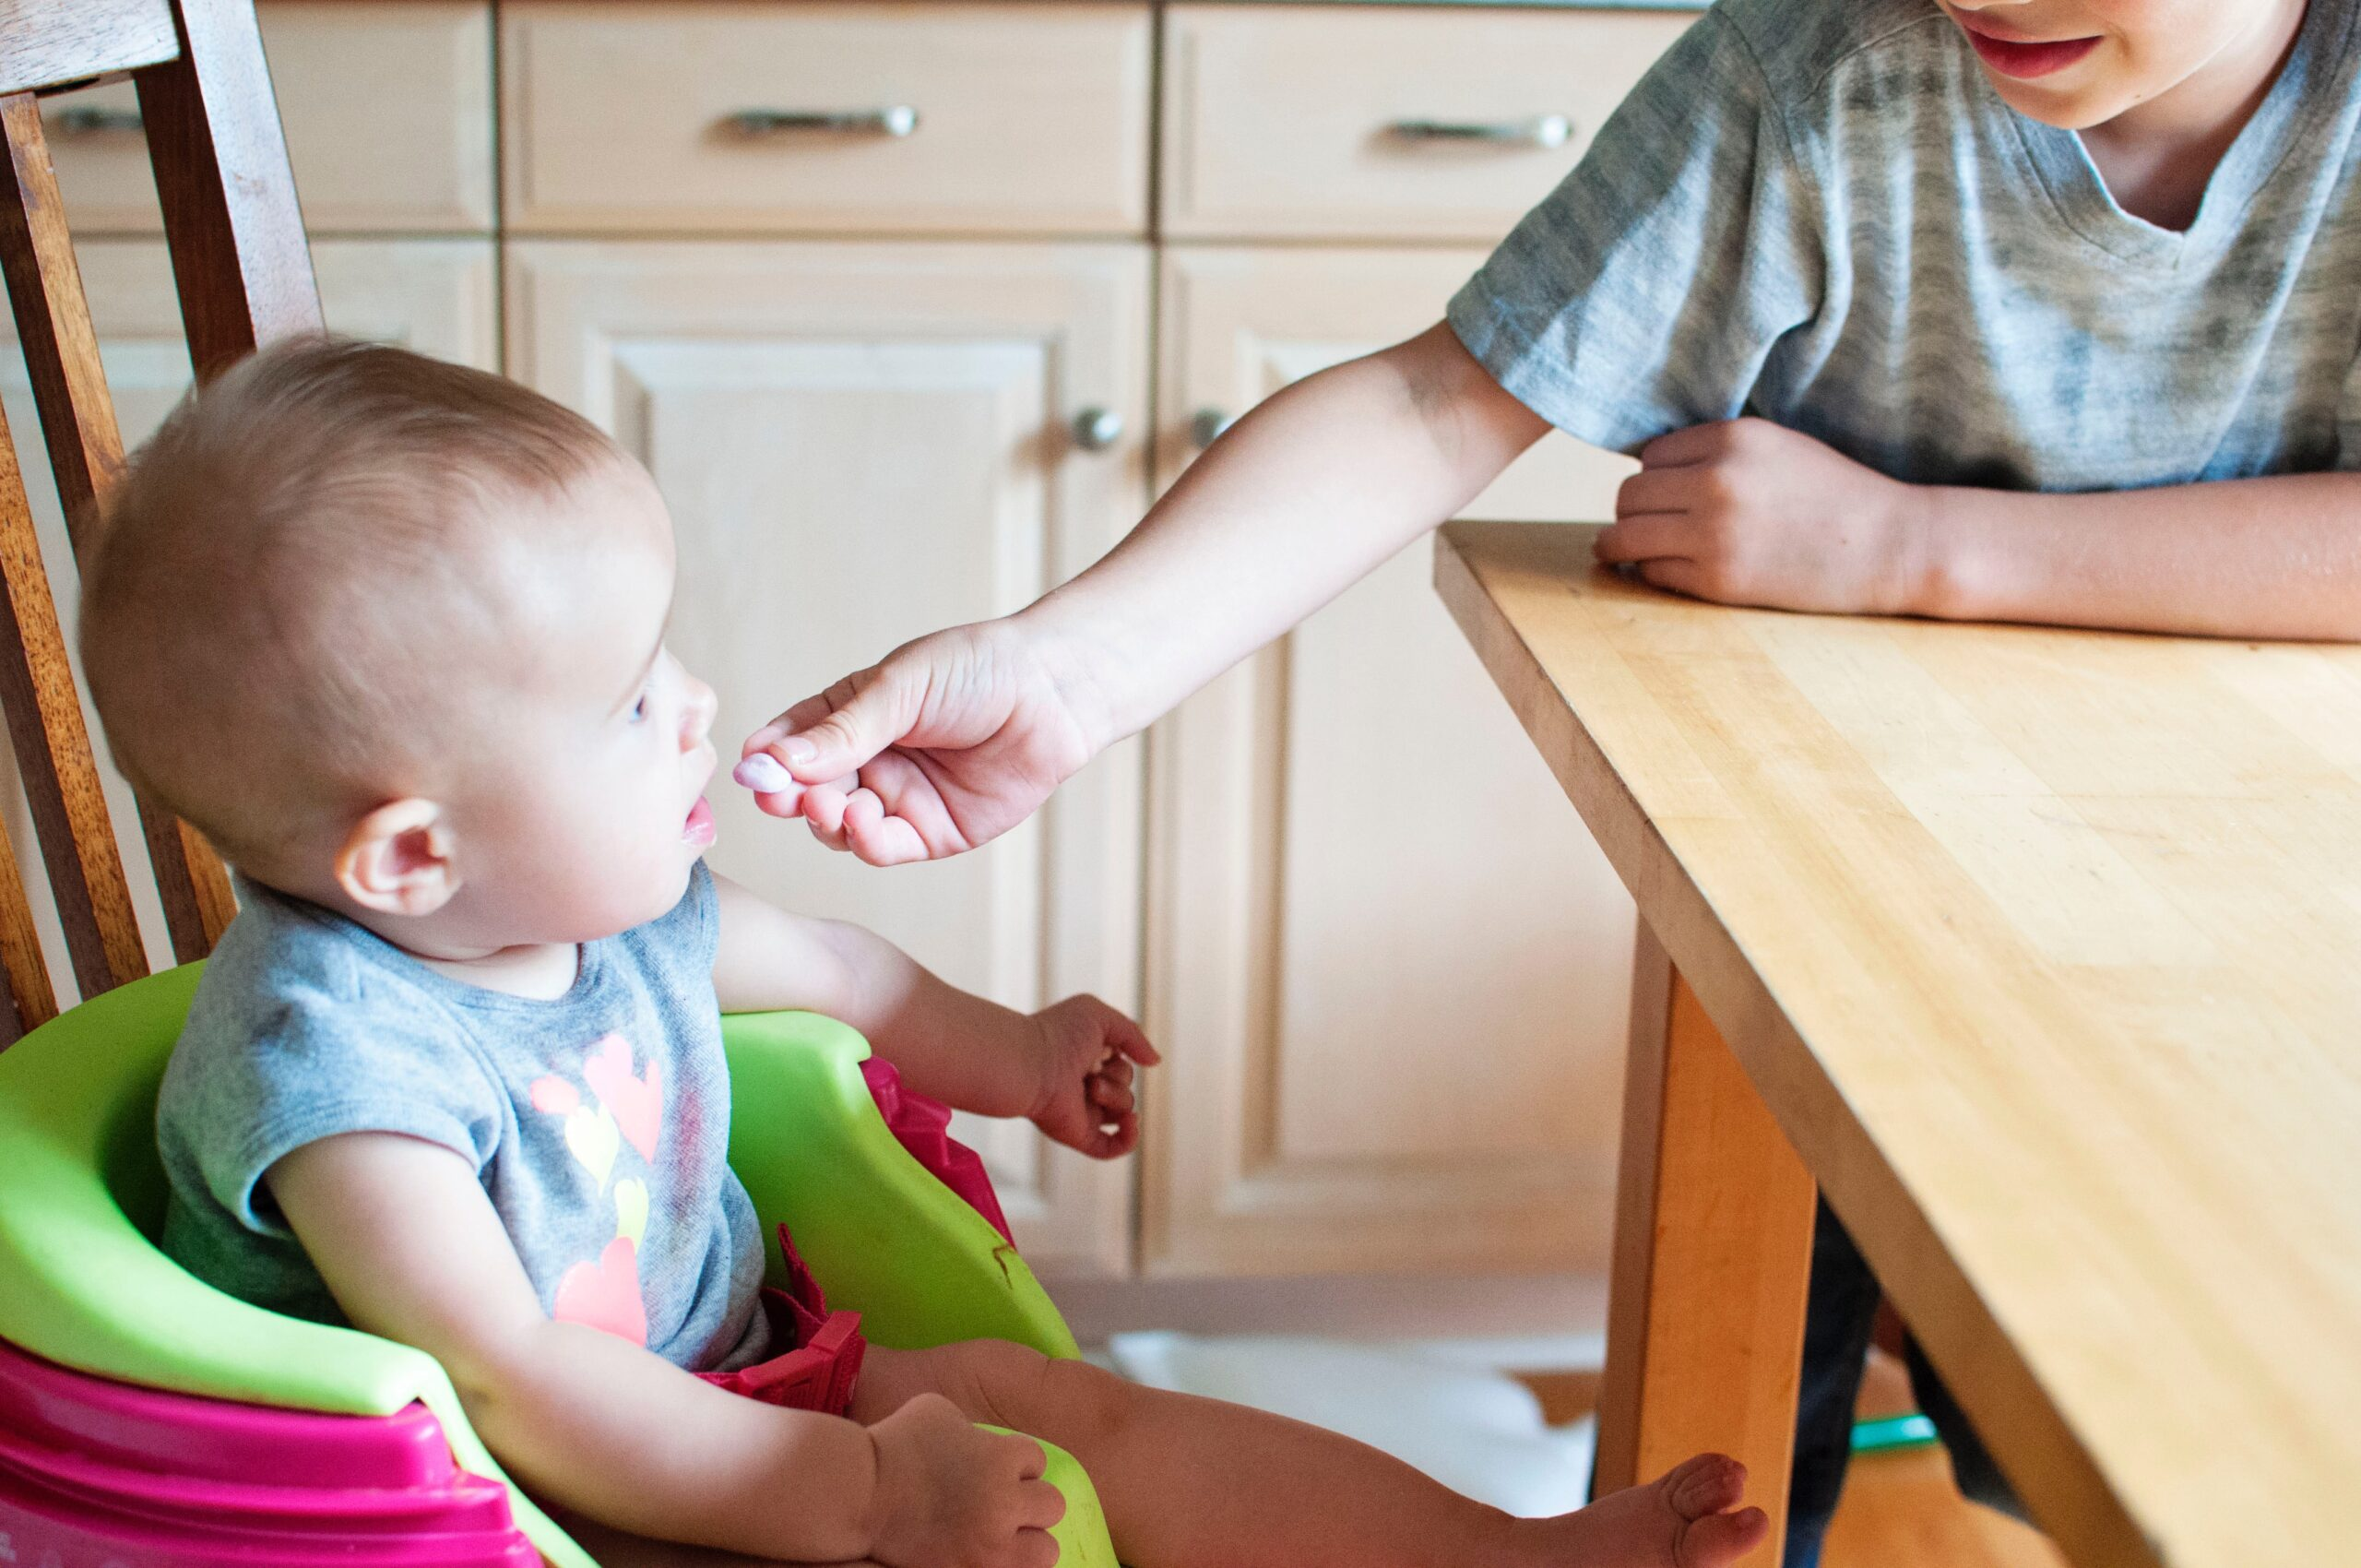 baby eating in a high chair